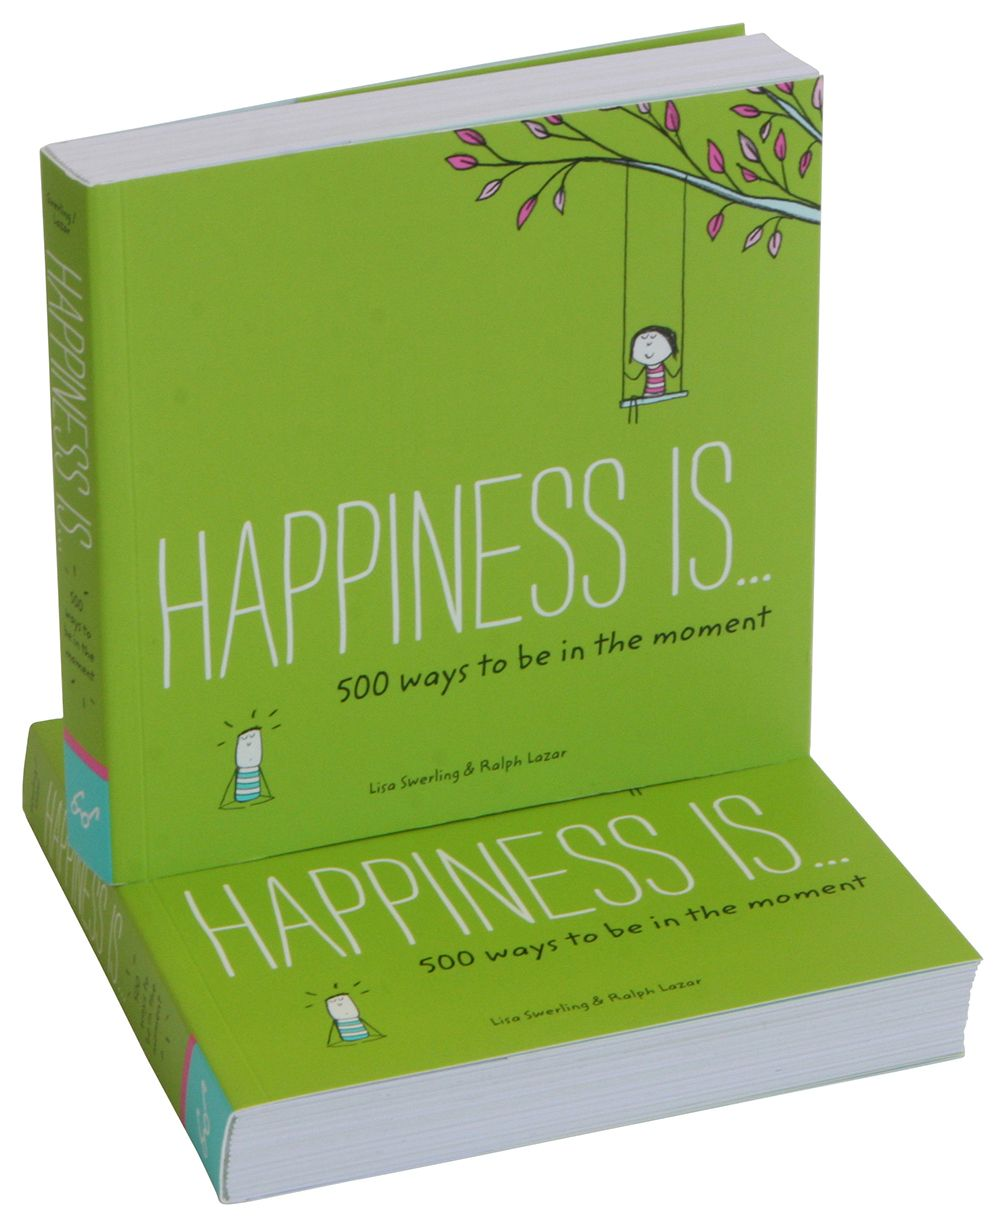 Illustrated guidebook by award winning artists shows you 500 ways to happiness through mindfulness.